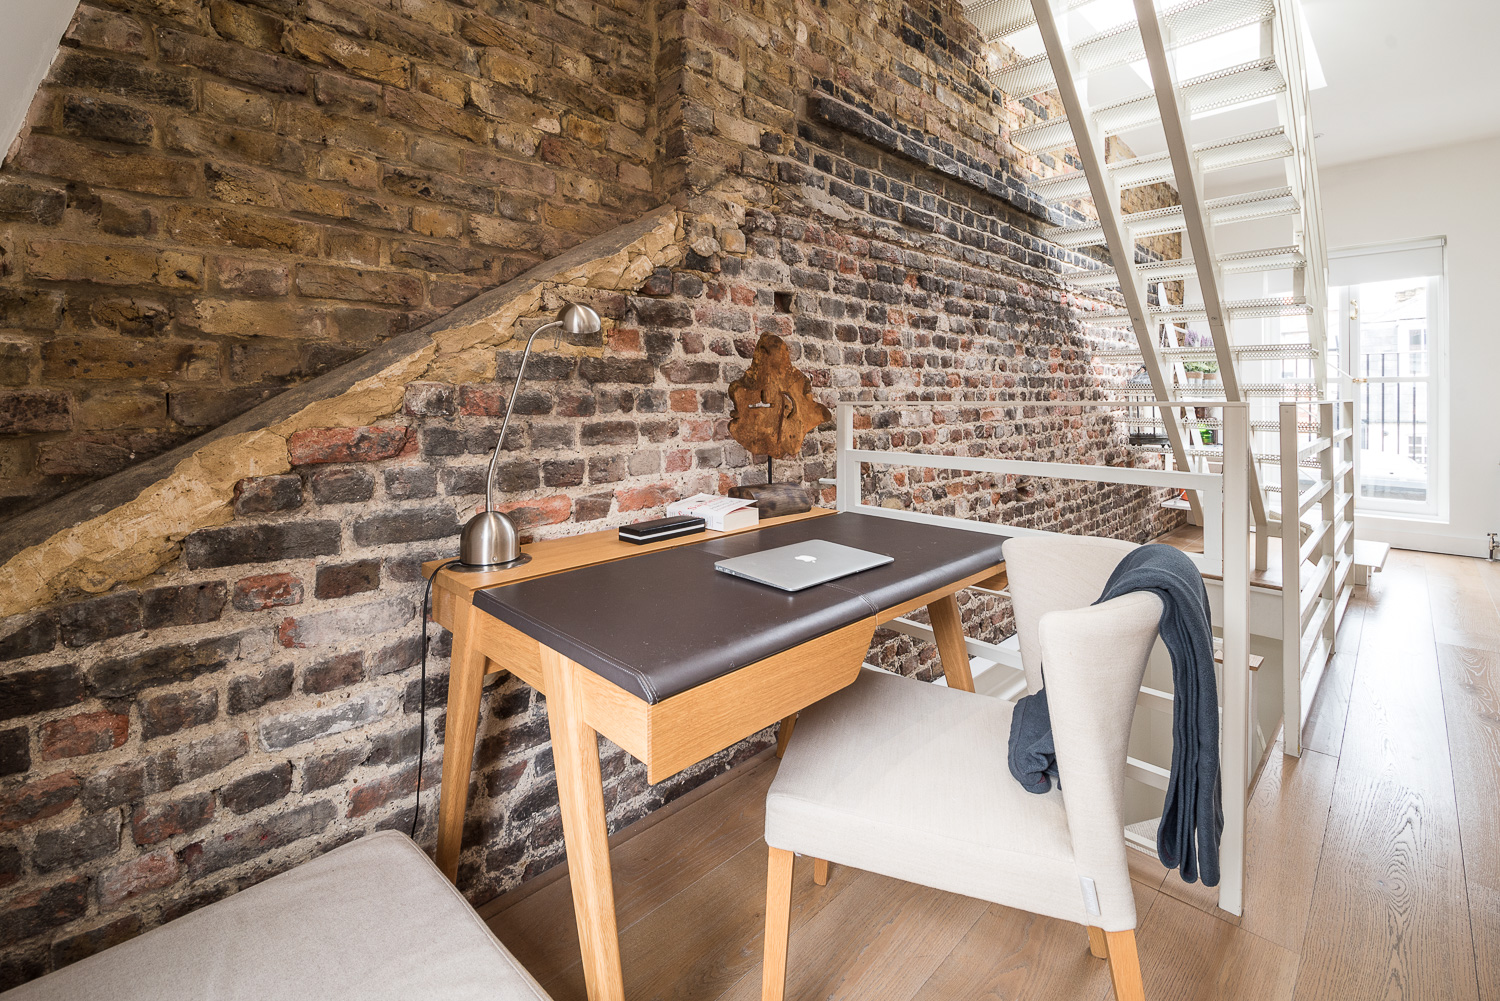 Lovelydays luxury service apartment rental - London - Fitzrovia - Foley Street II - Lovelysuite - 2 bedrooms - 2 bathrooms - Working desk - ce15d0746e16 - Lovelydays